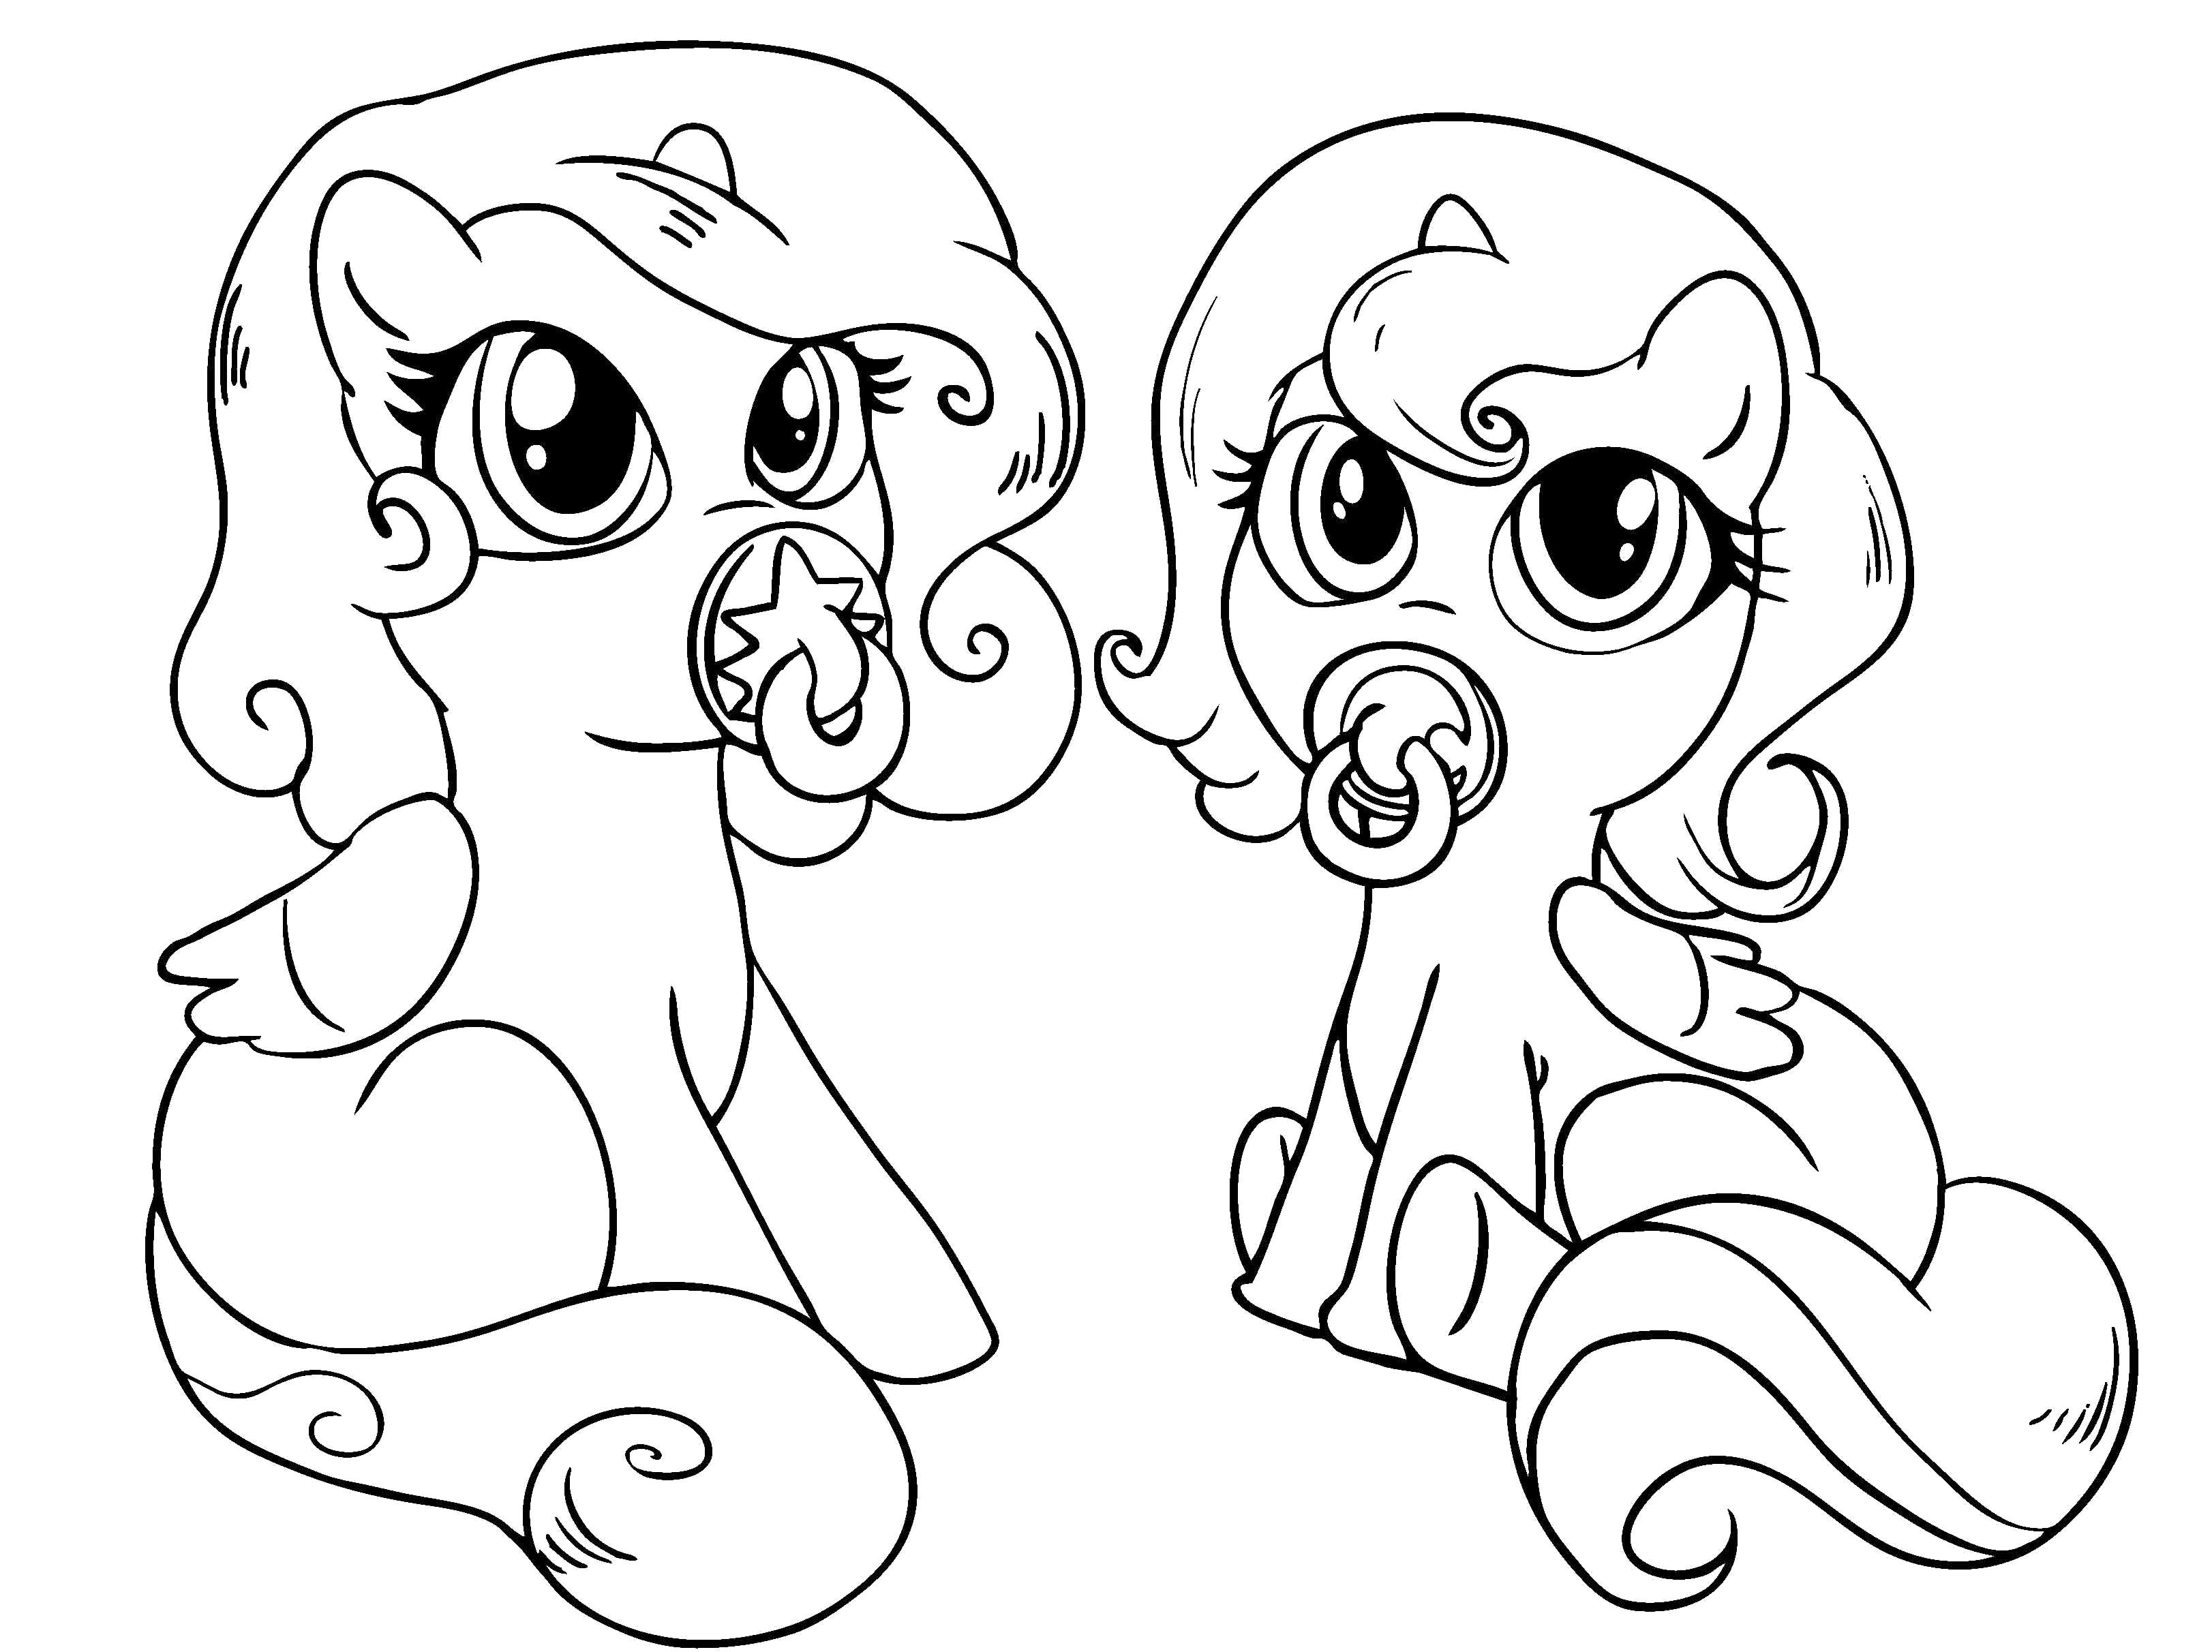 My Little Pony Fluttershy Ausmalbilder : Baby Little Pony Coloring Pages My Little Pony Car Coloring Pages